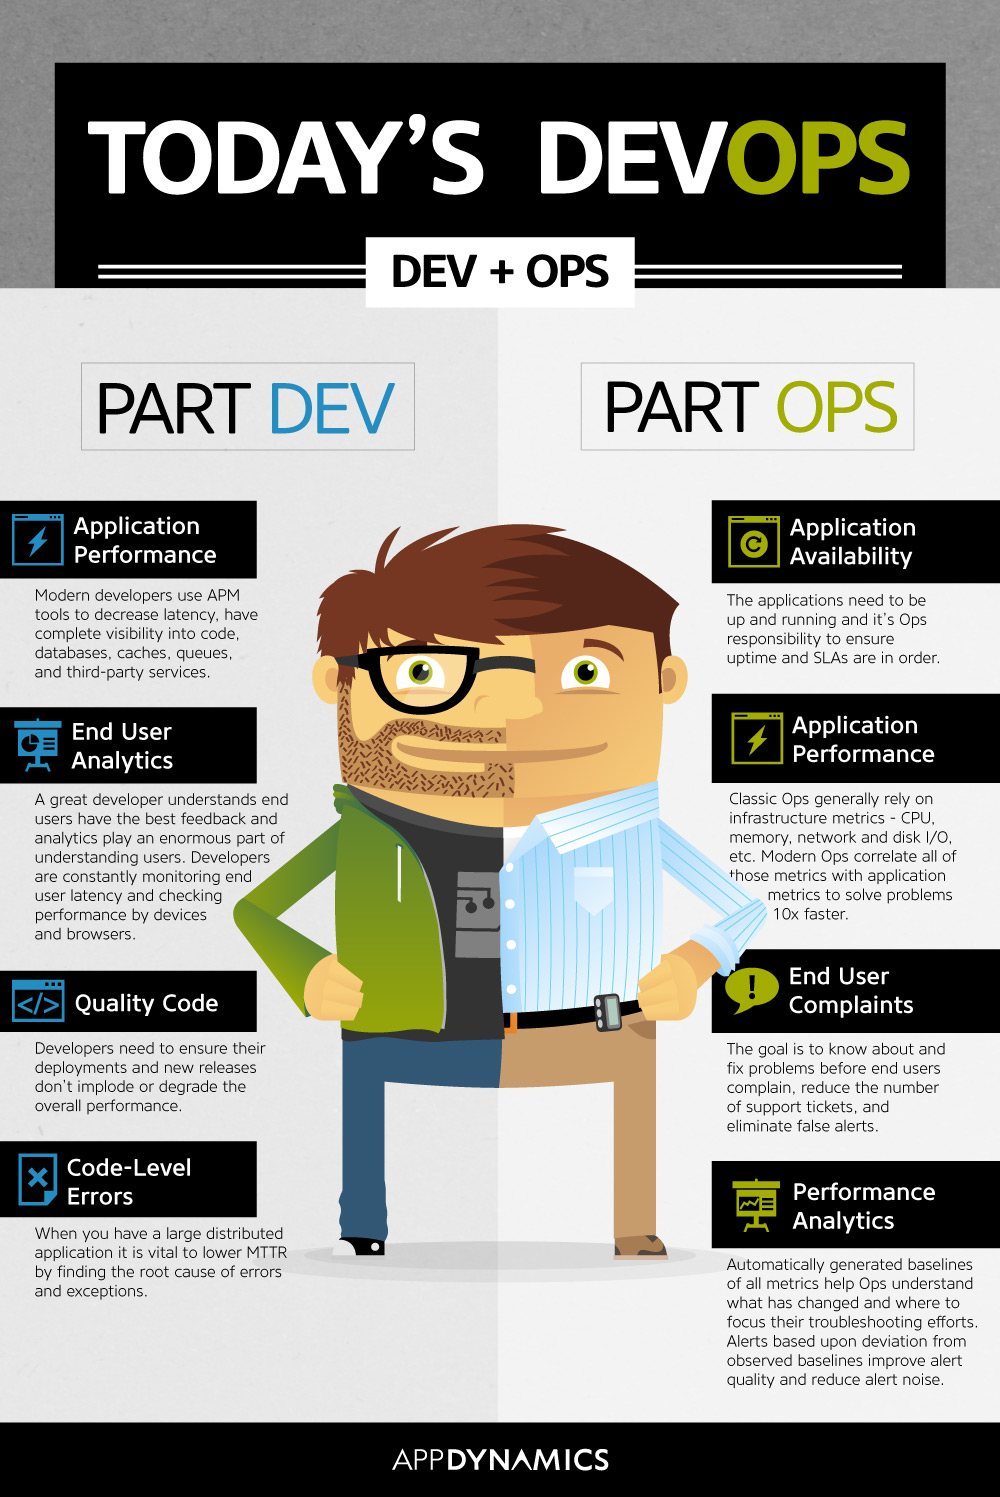 DevOps-part-dev-part-ops